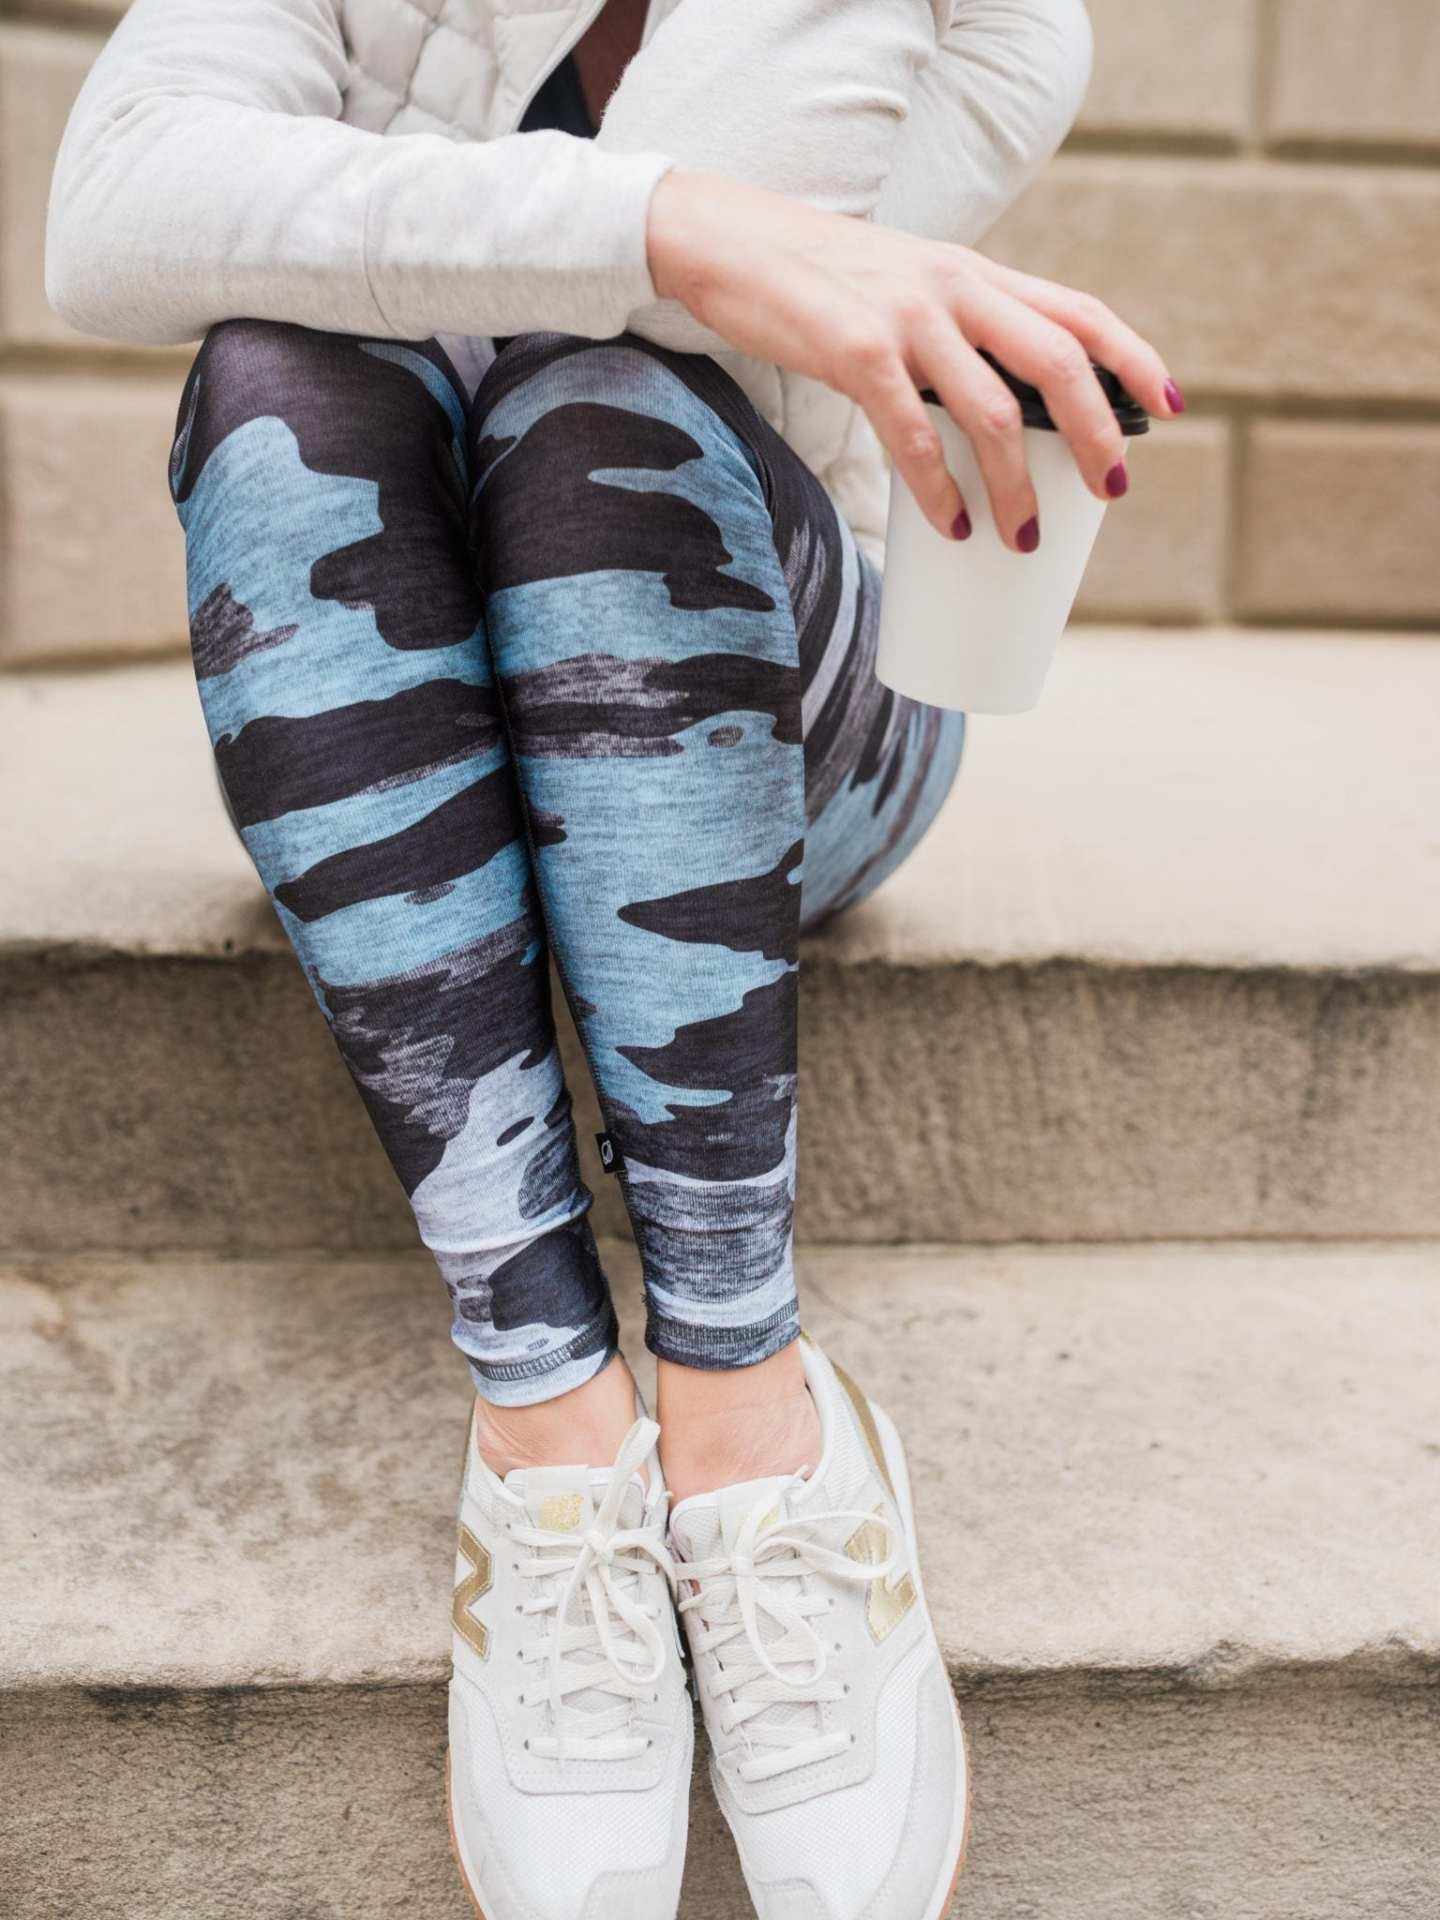 leggings aren't only for the gym!